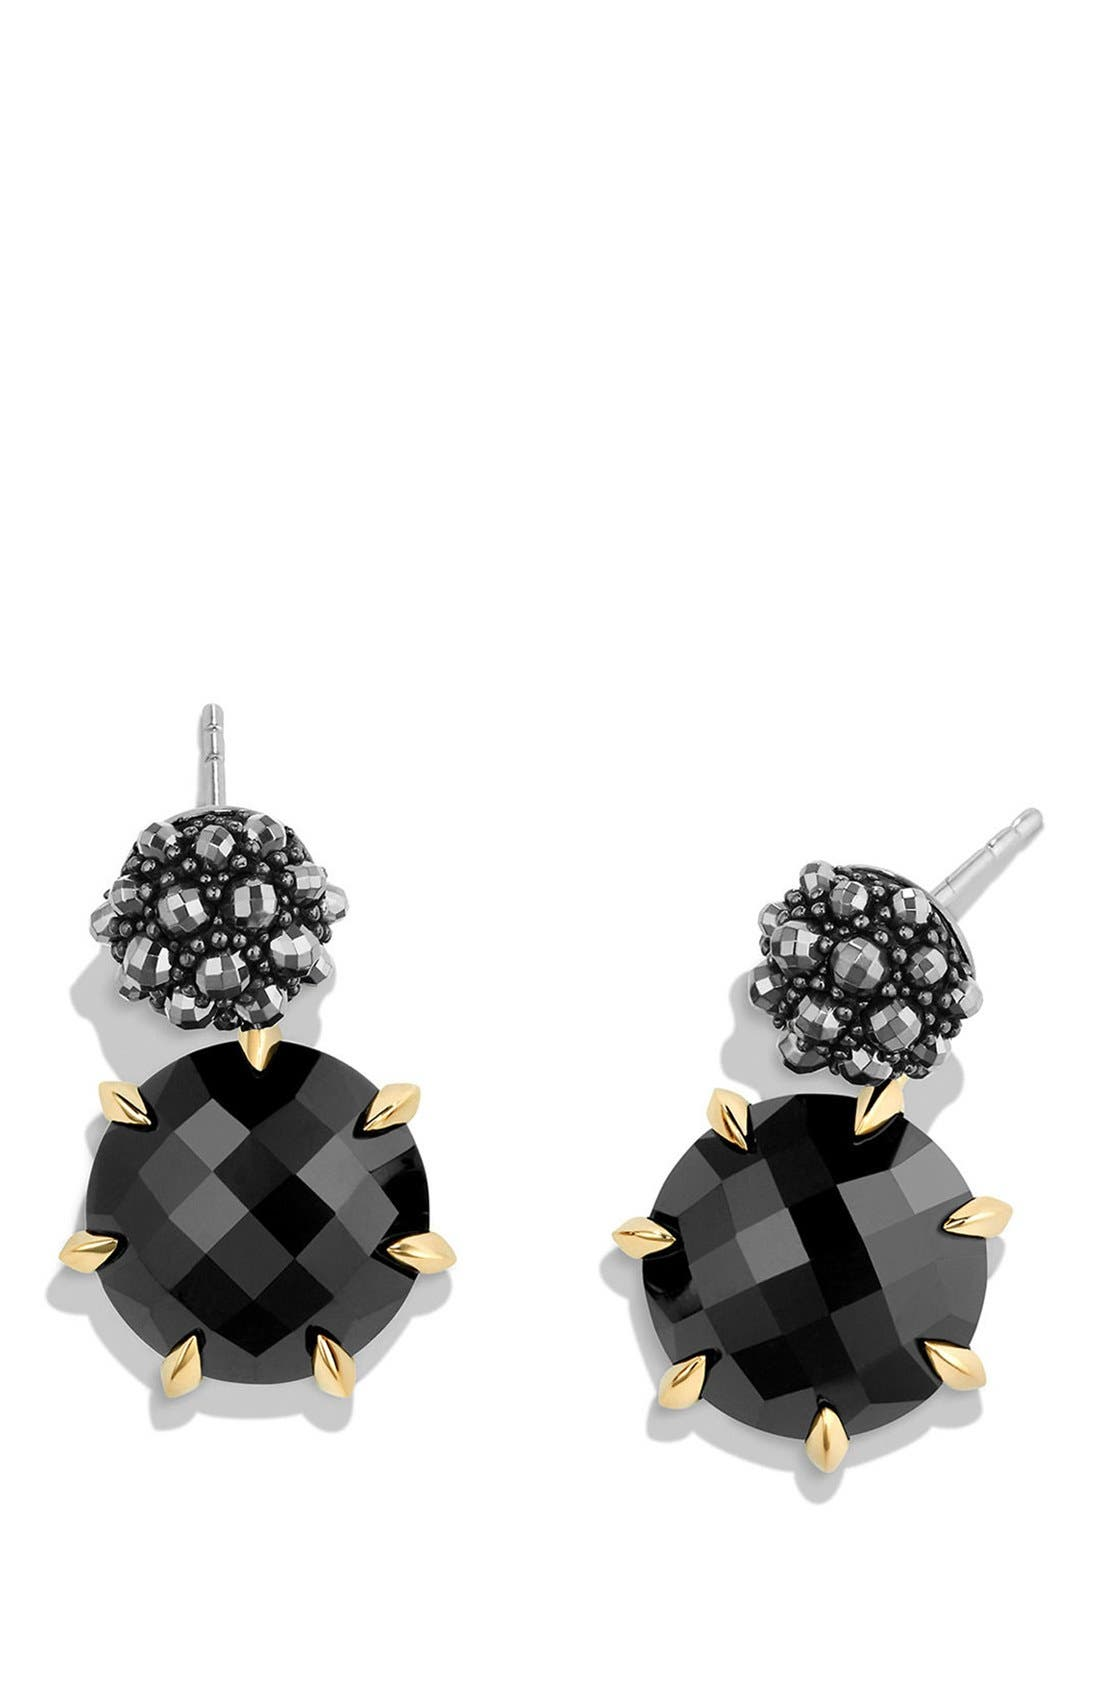 Cable Berries Drop Earrings with 18K Gold,                             Alternate thumbnail 2, color,                             BLACK ONYX/ HEMATINE